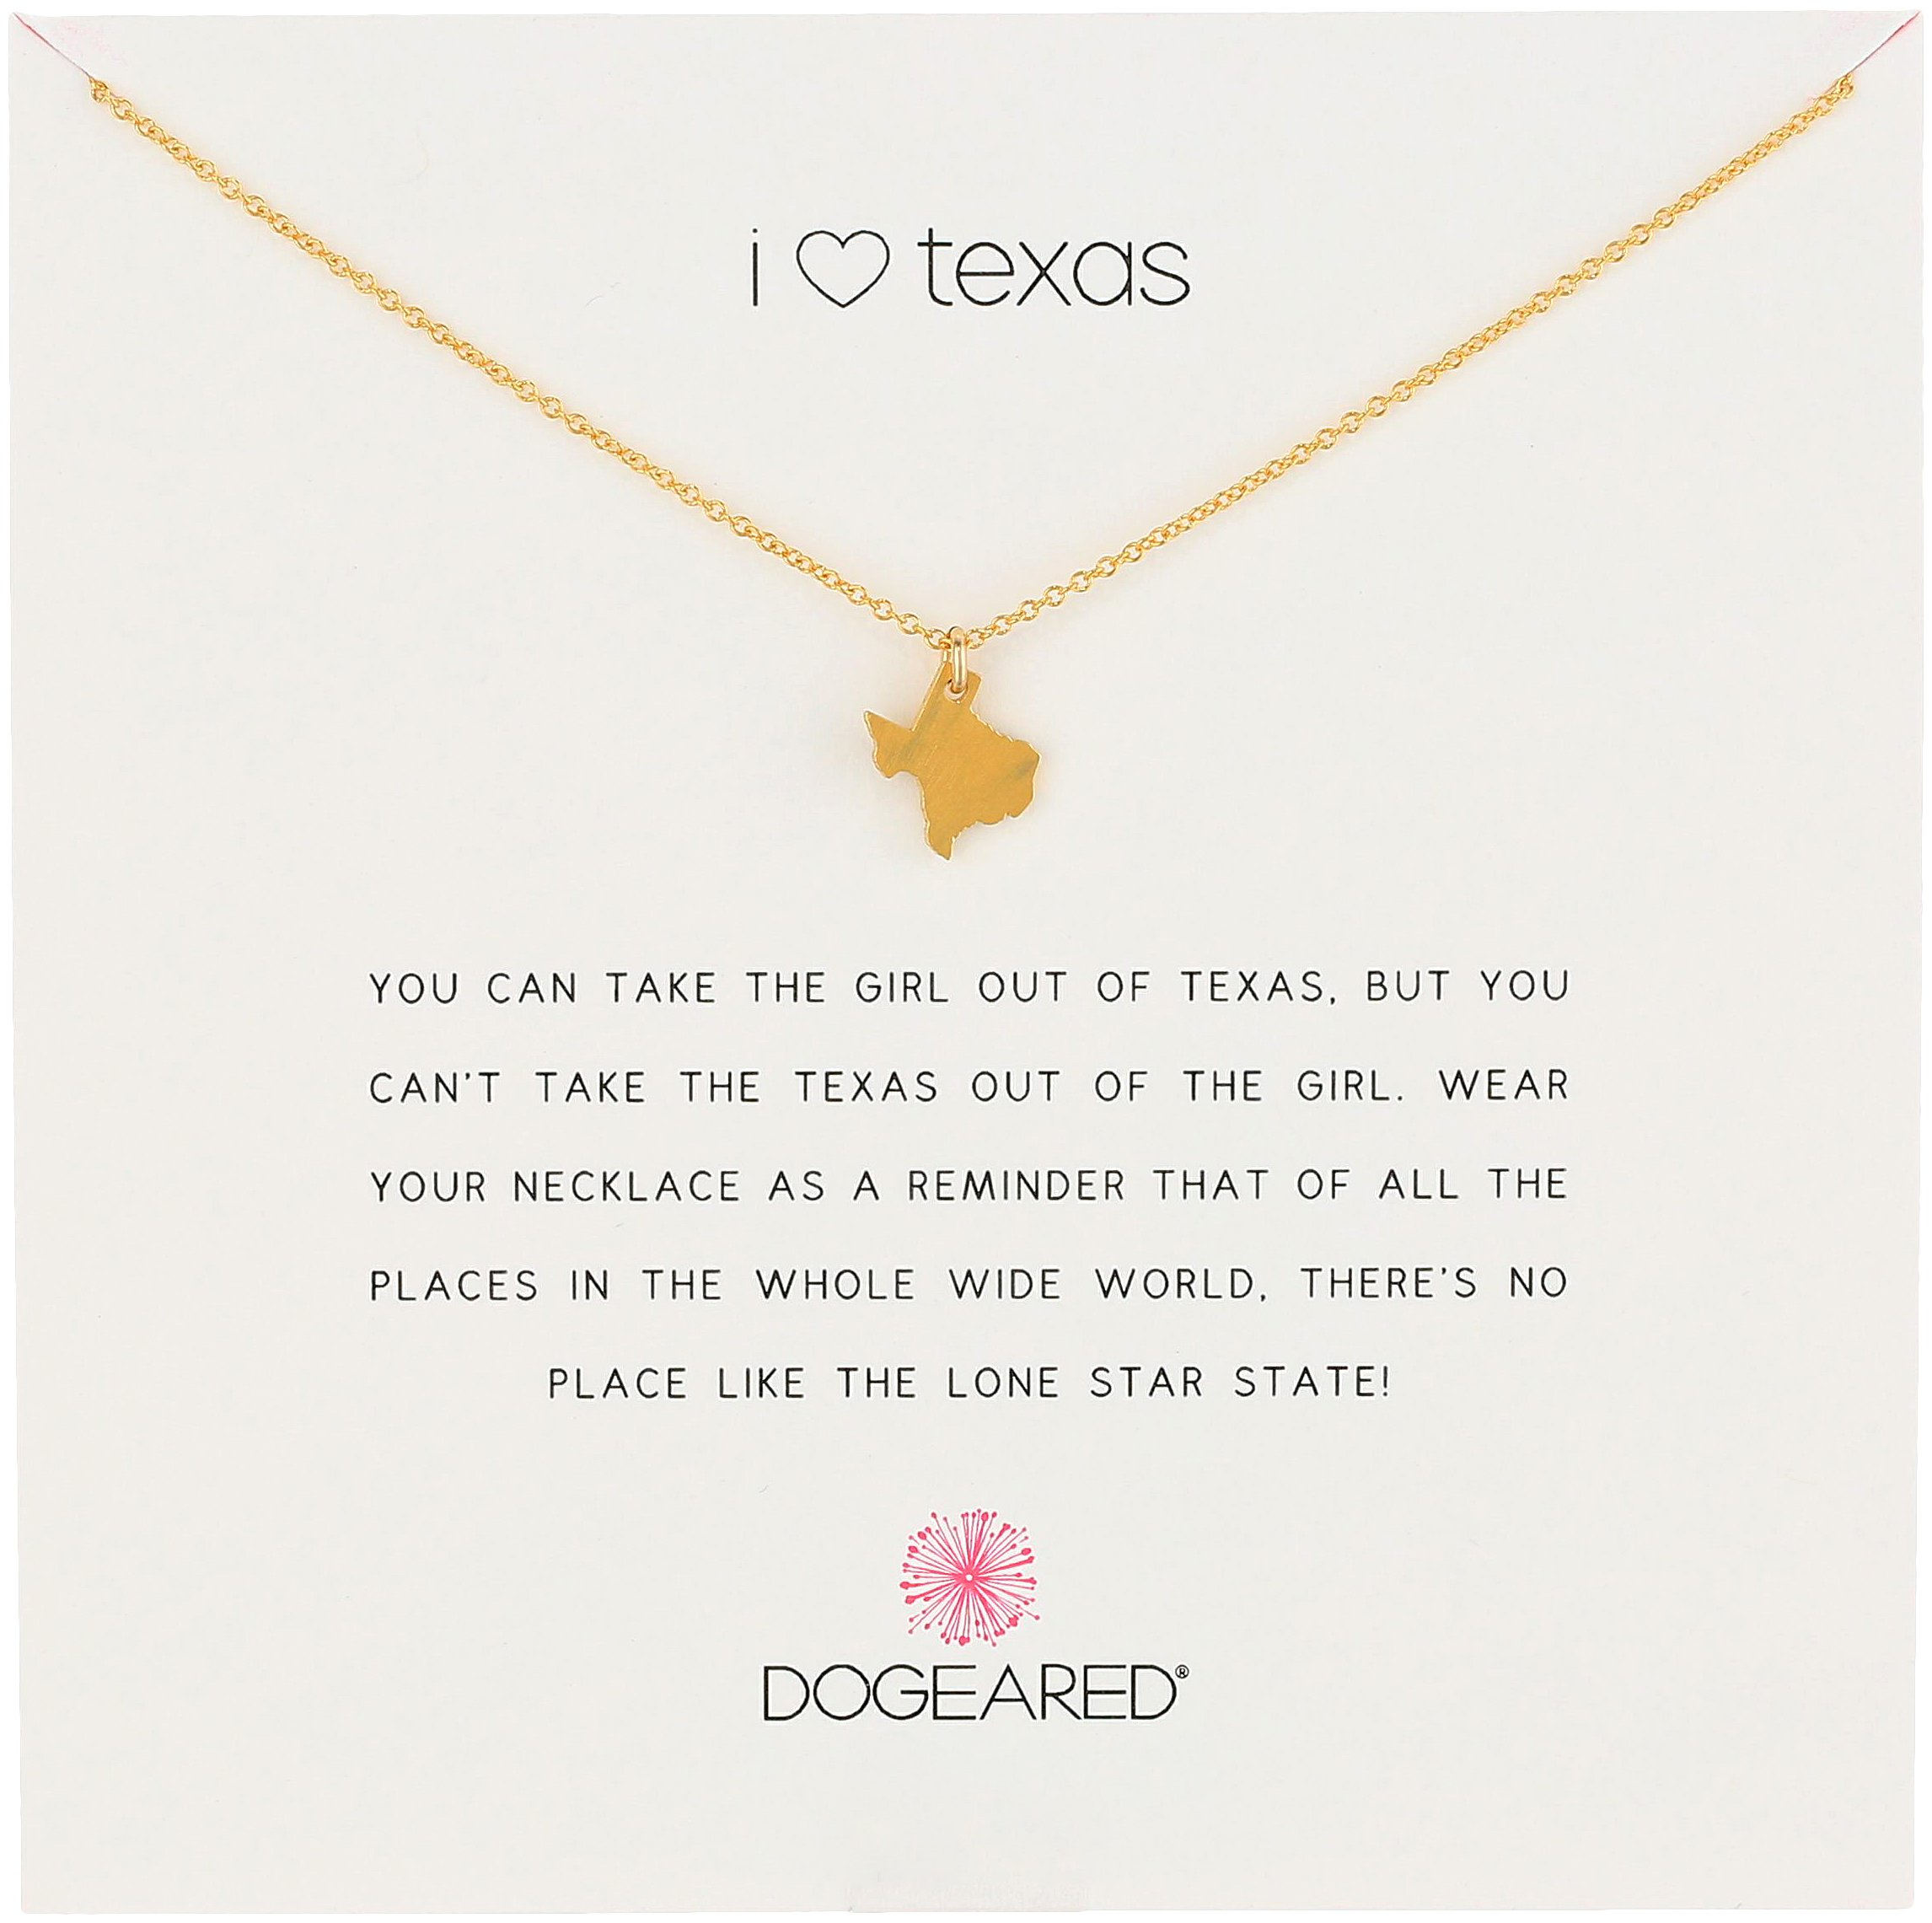 I Heart Texas necklace pendant Dogeared